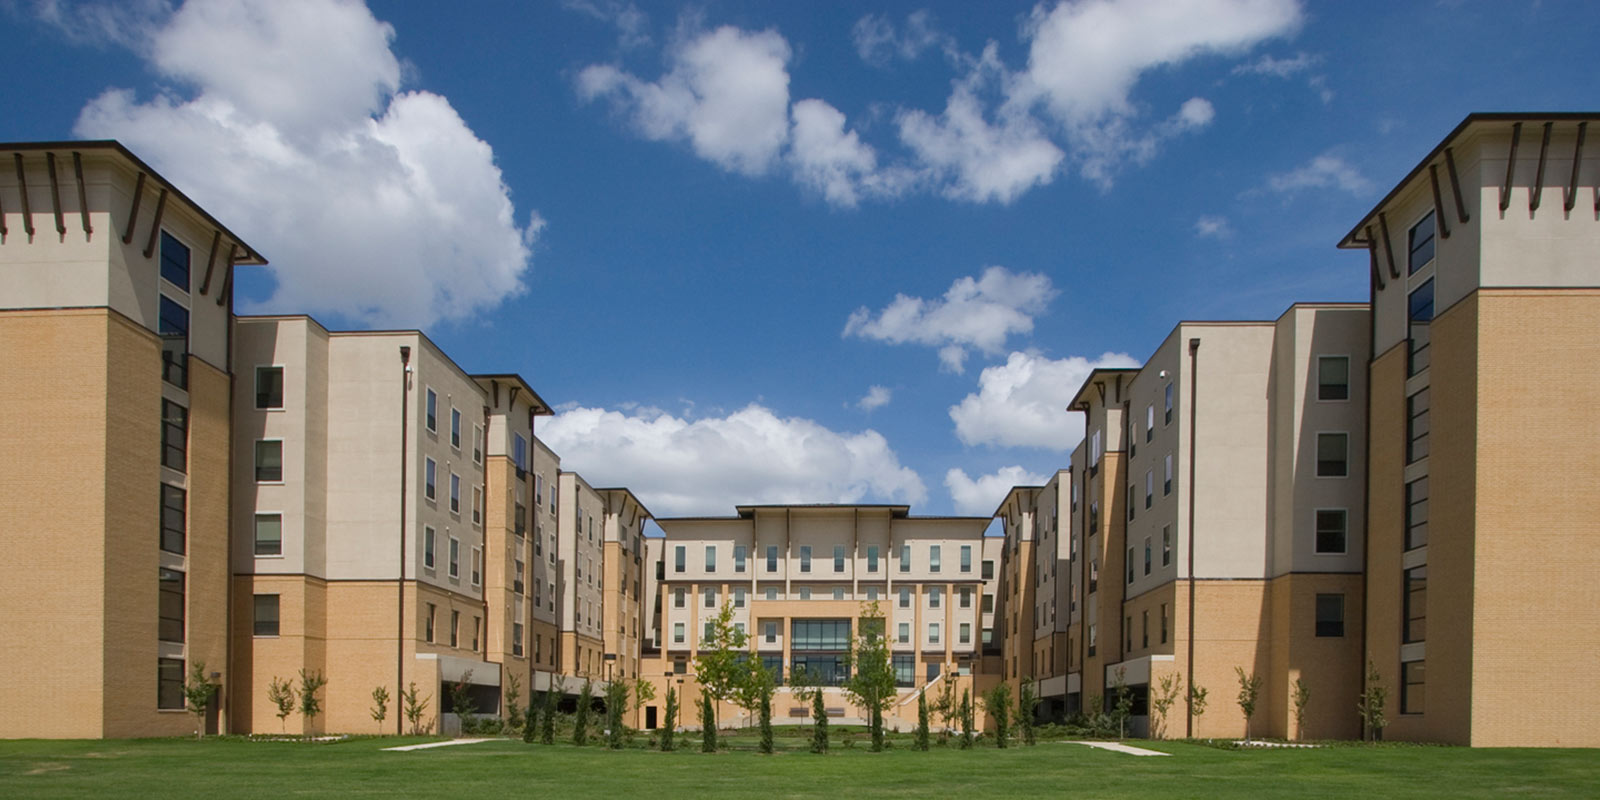 Universities In Dallas Texas >> University Of Dallas Residence Hall Architecture Demarest